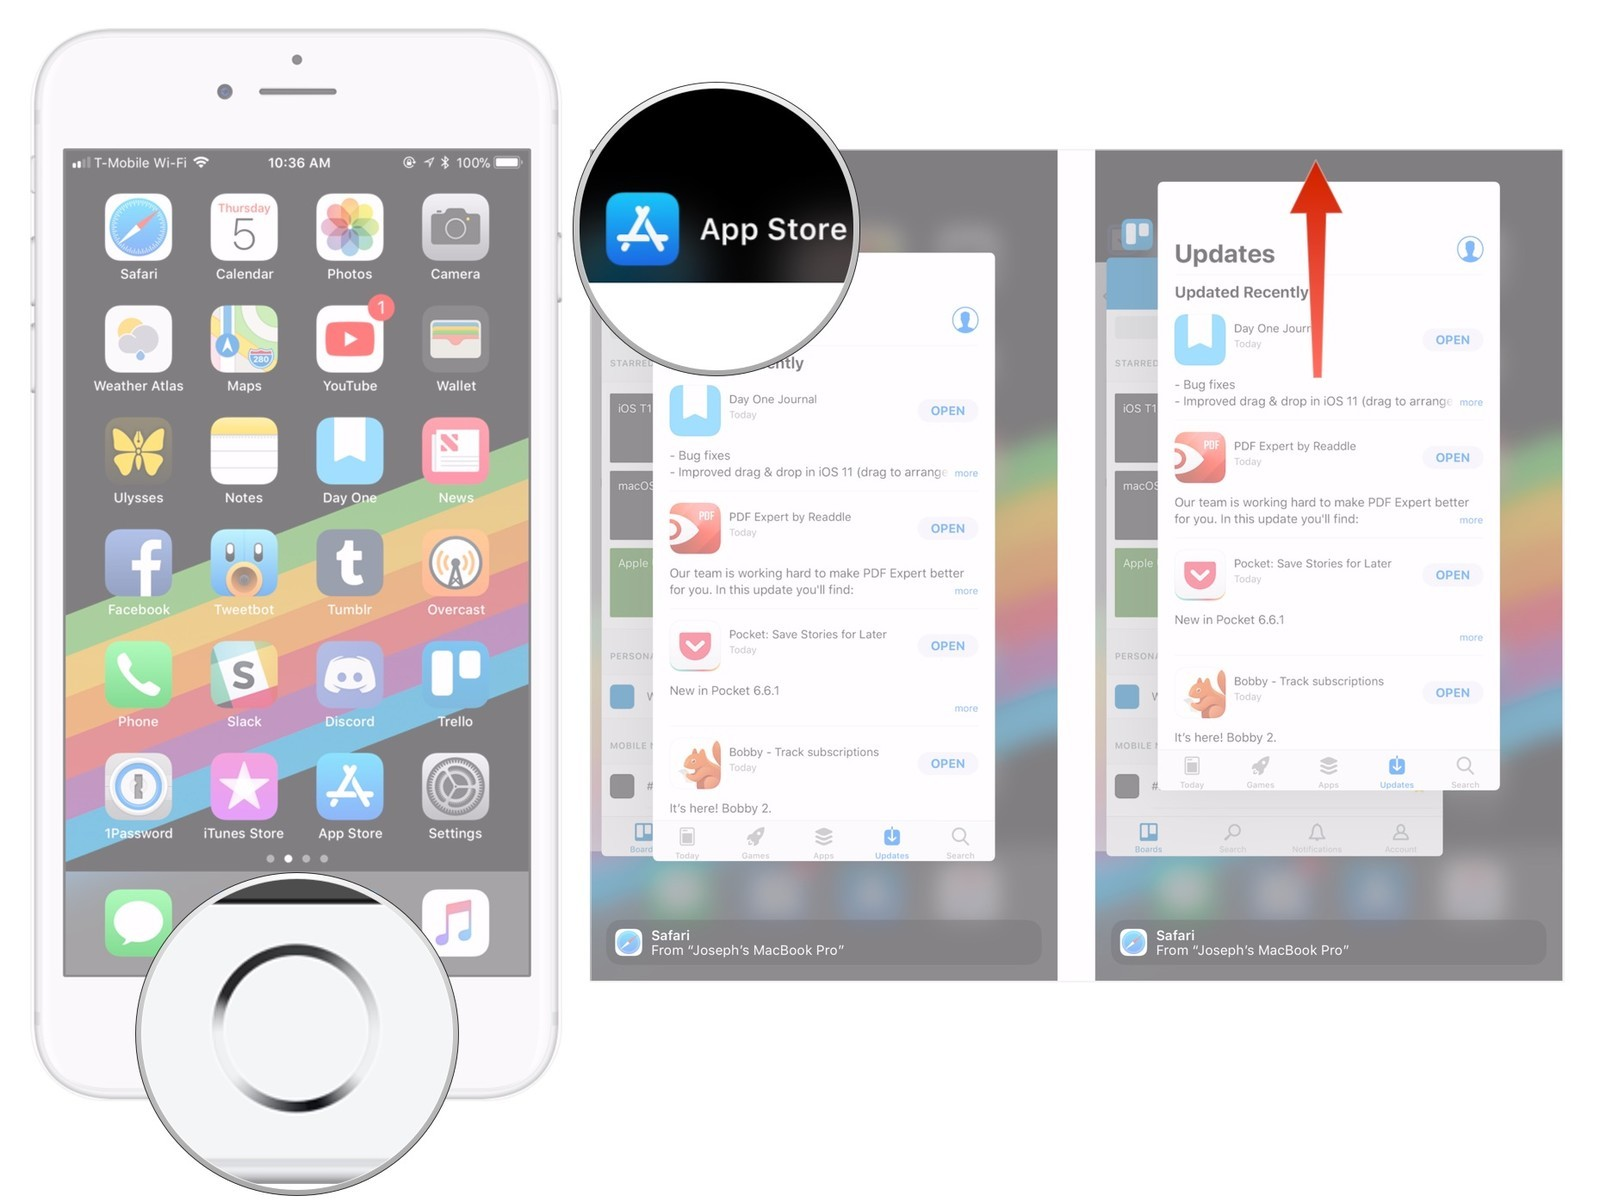 Double Click Home Button, Find App, Swipe Up On App